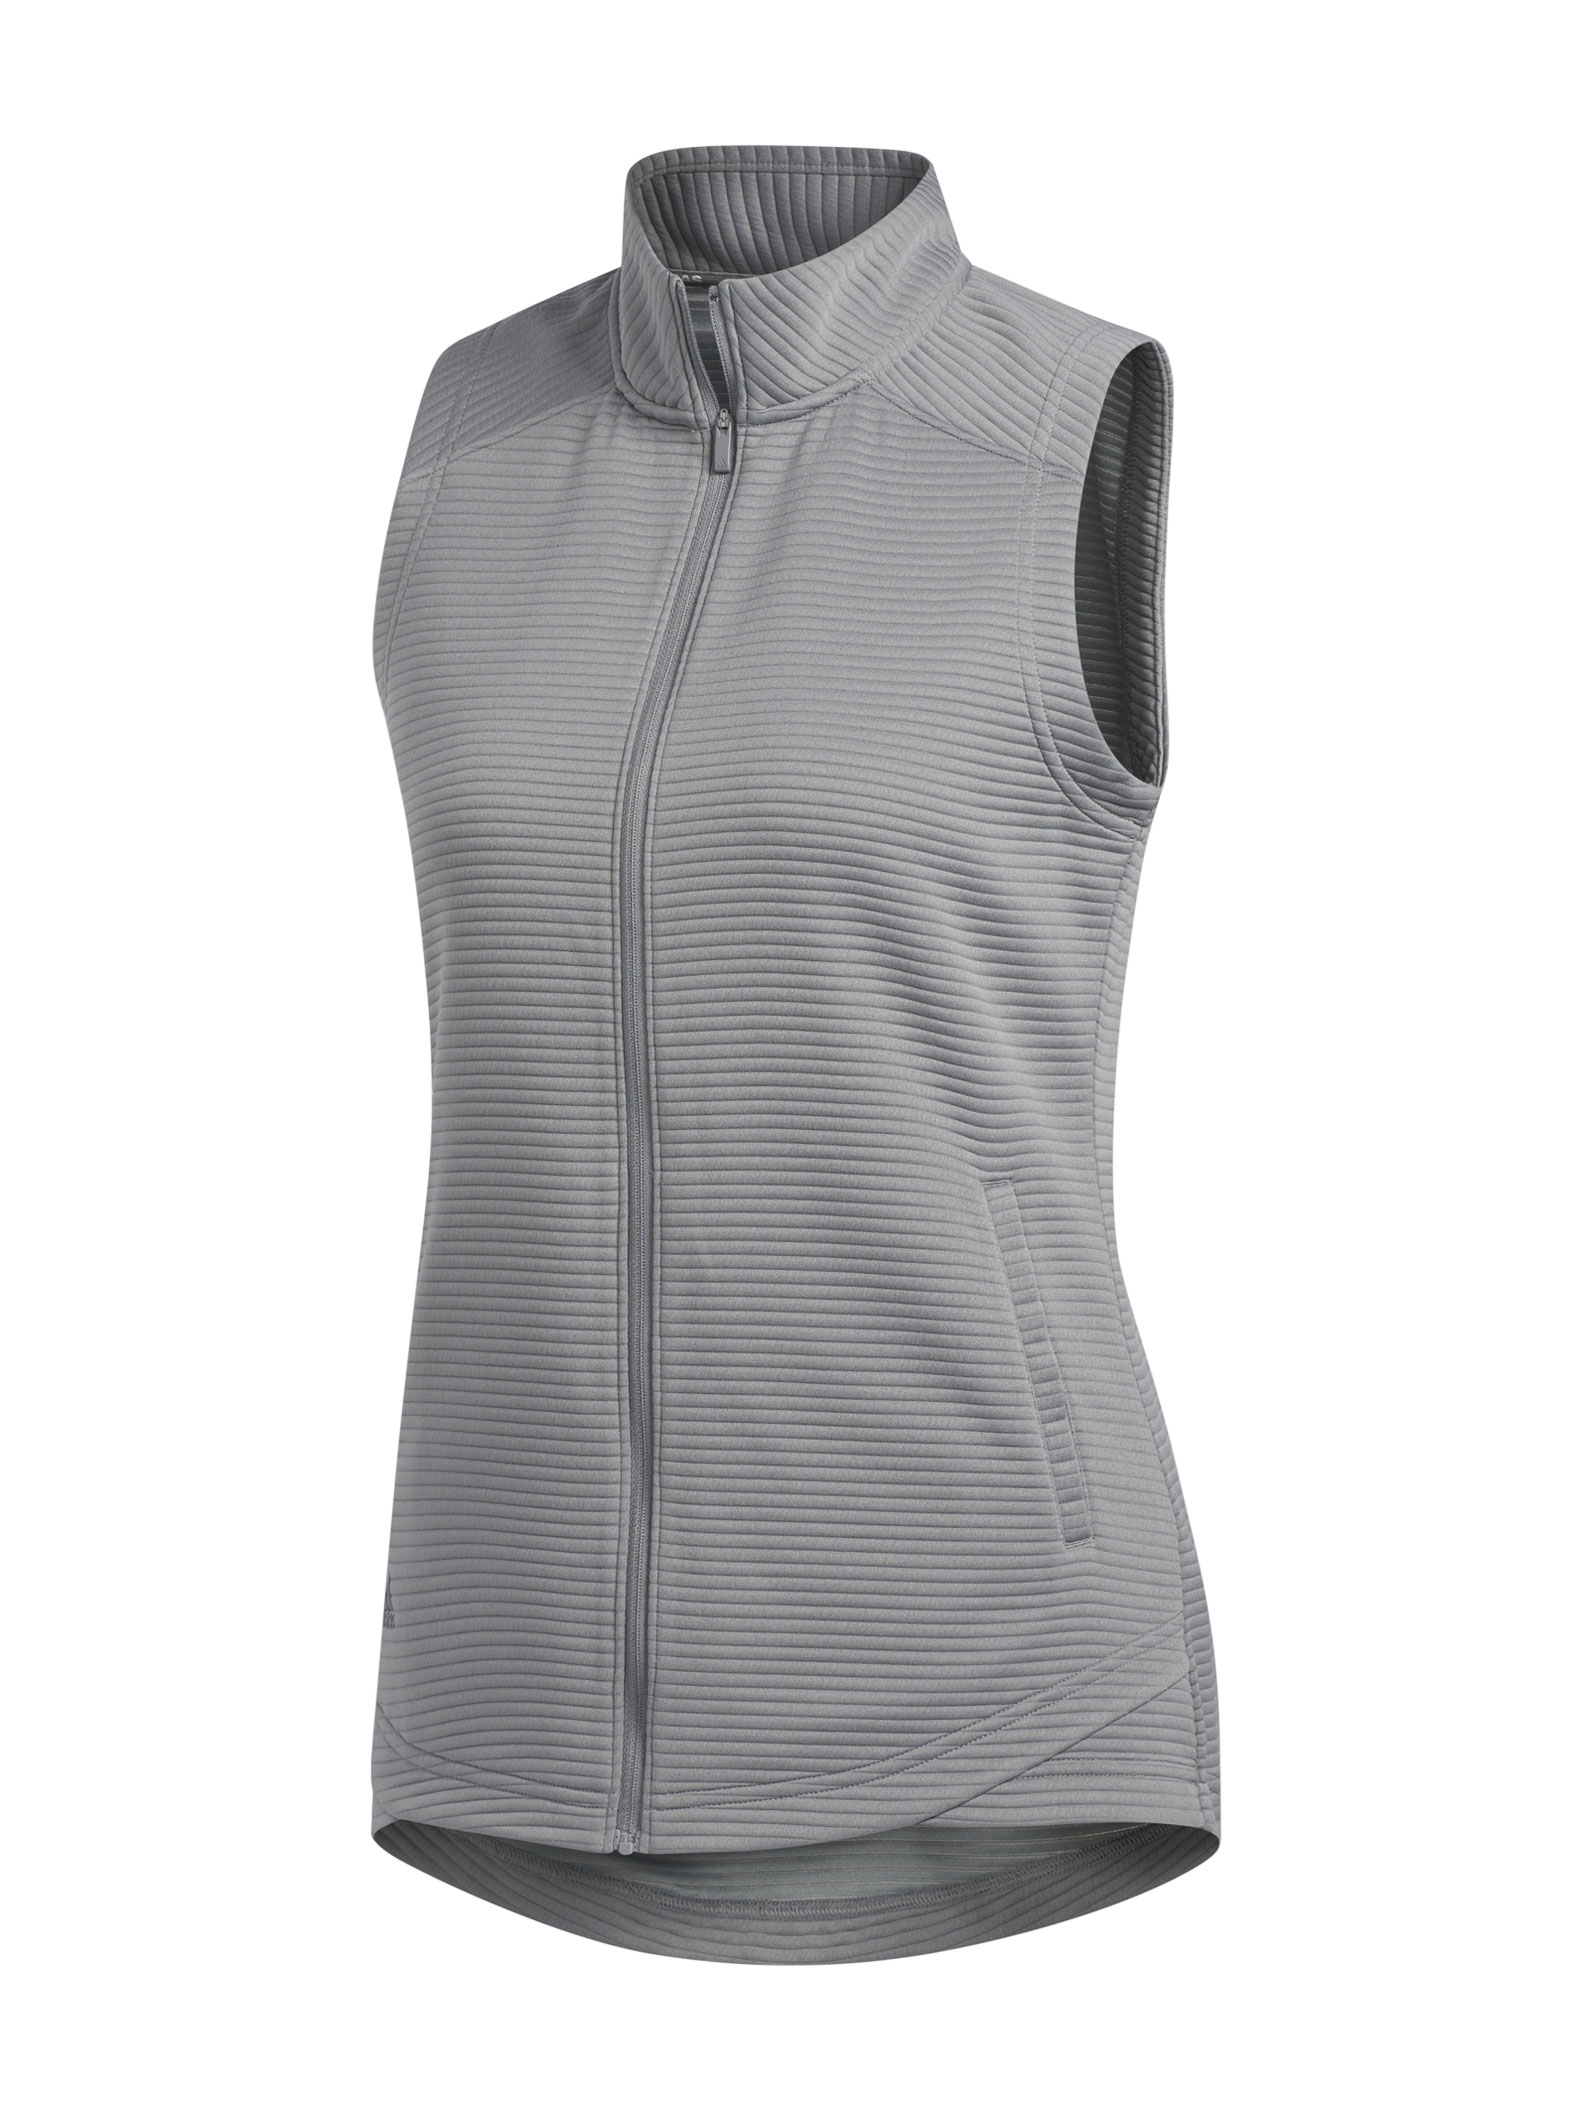 Adidas Womens Lifestyle Textured Vest